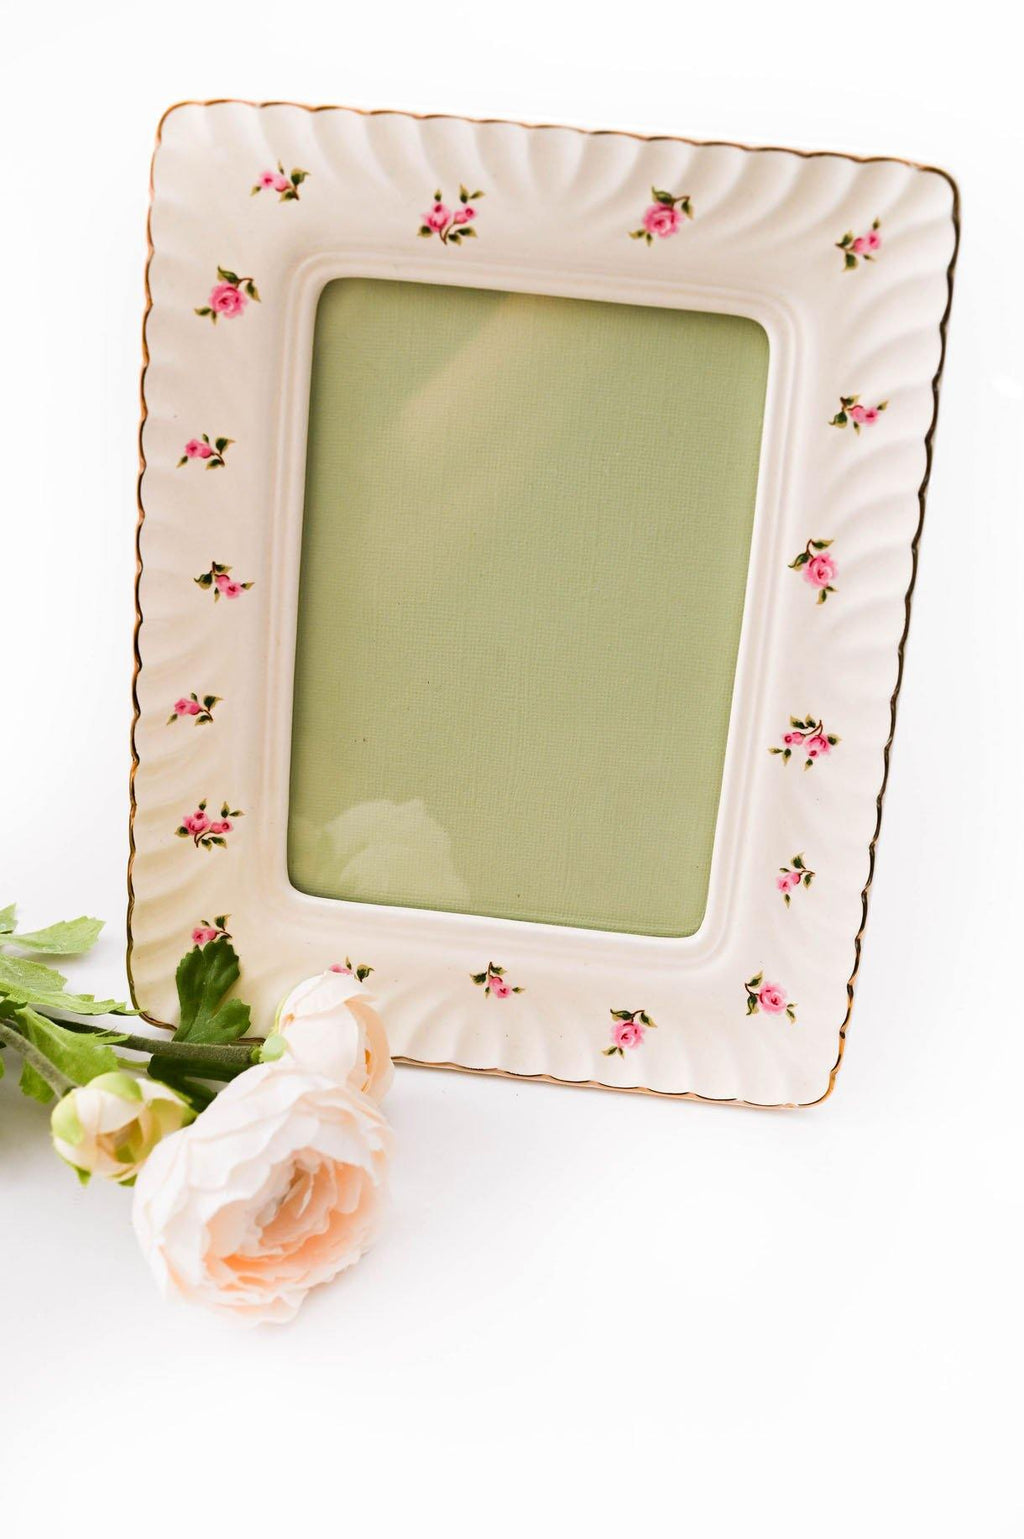 Textured Floral Rectangular Frame